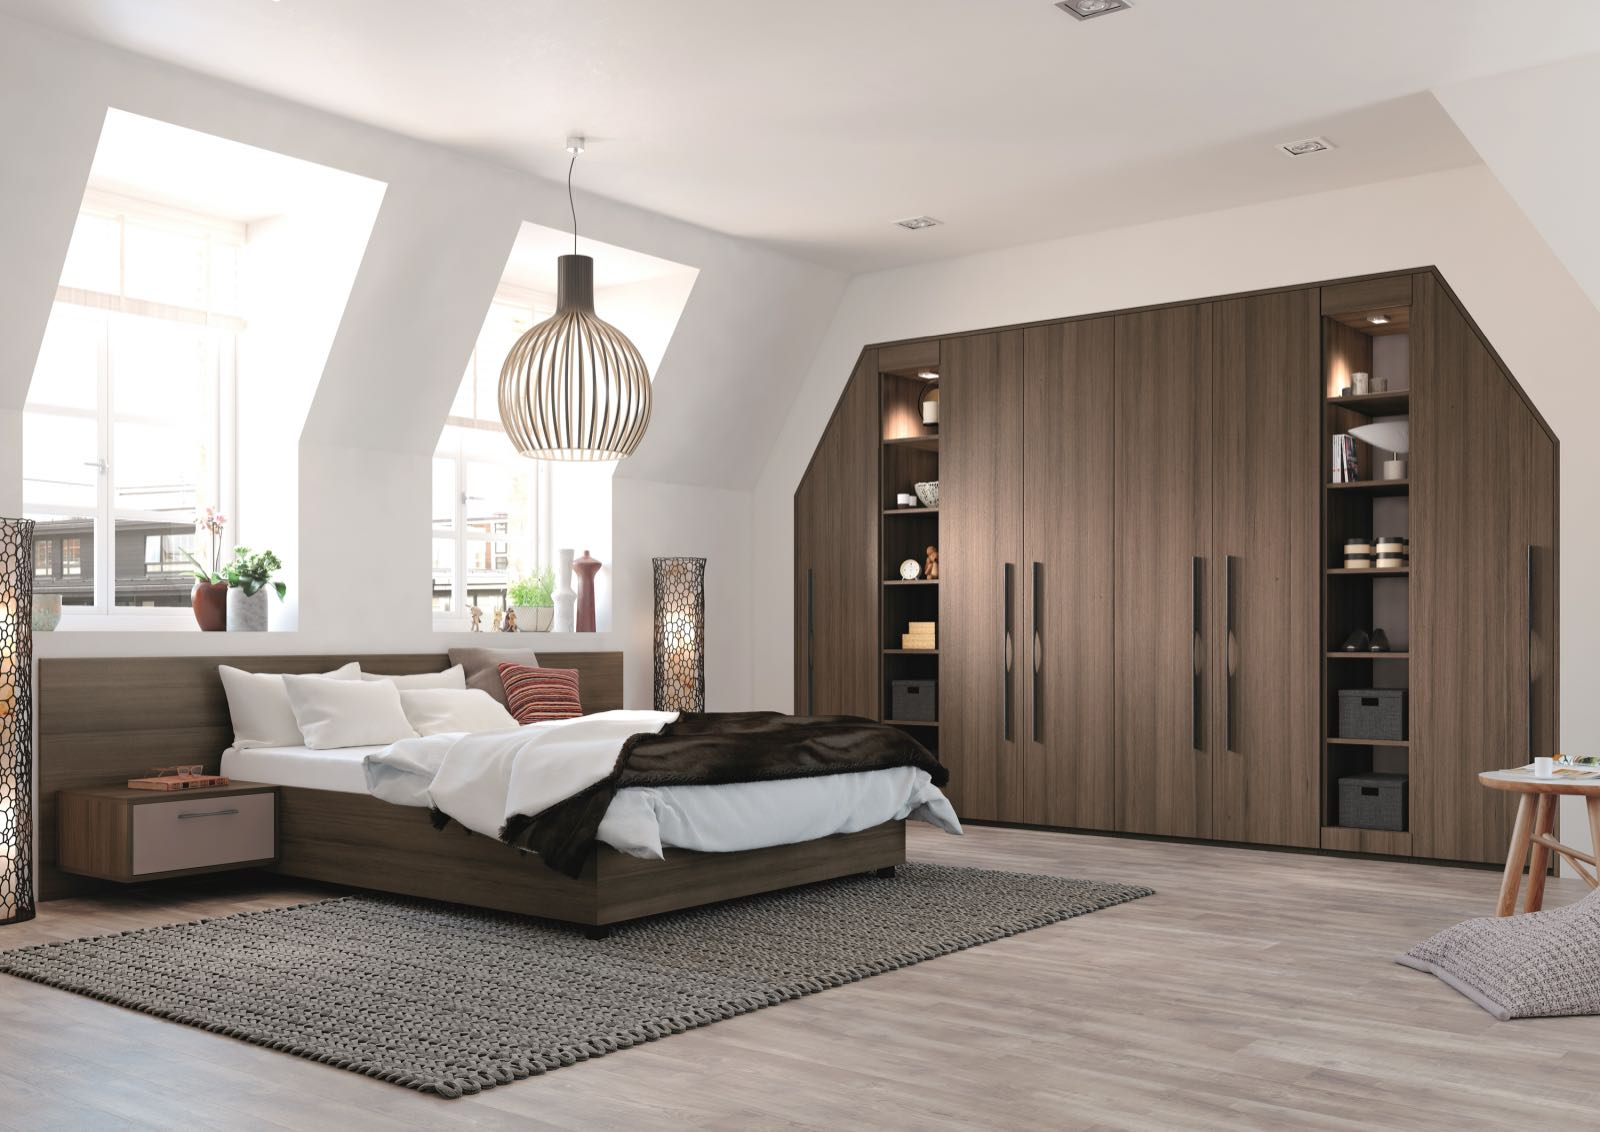 Cardiff Bedroom Design